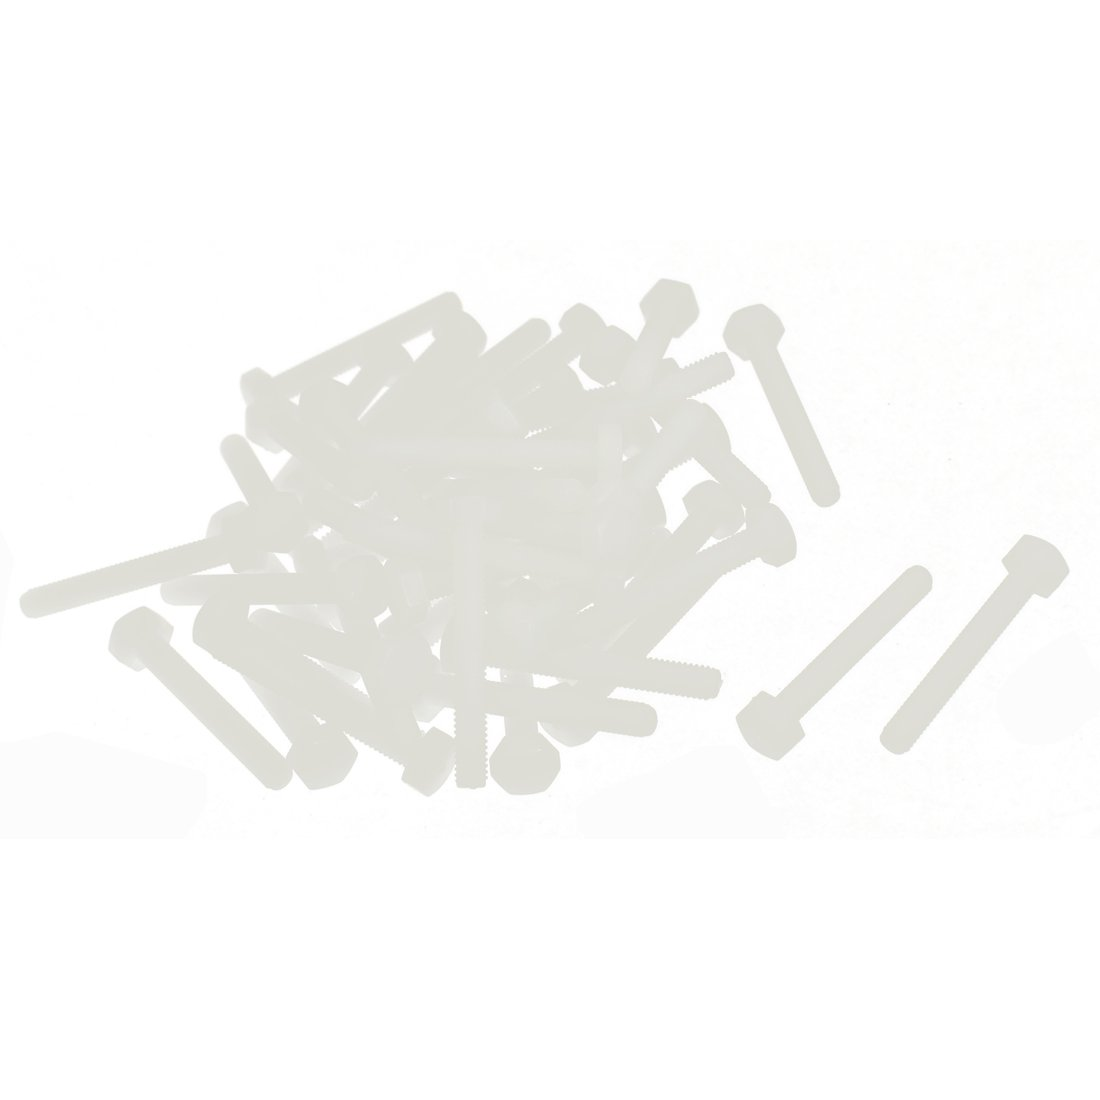 SOURCING MAP M4 x 30mm Fil Plein 0.7mm Pas Nylon Hex T/ête Capuchon Vis Boulon 50 Pcs